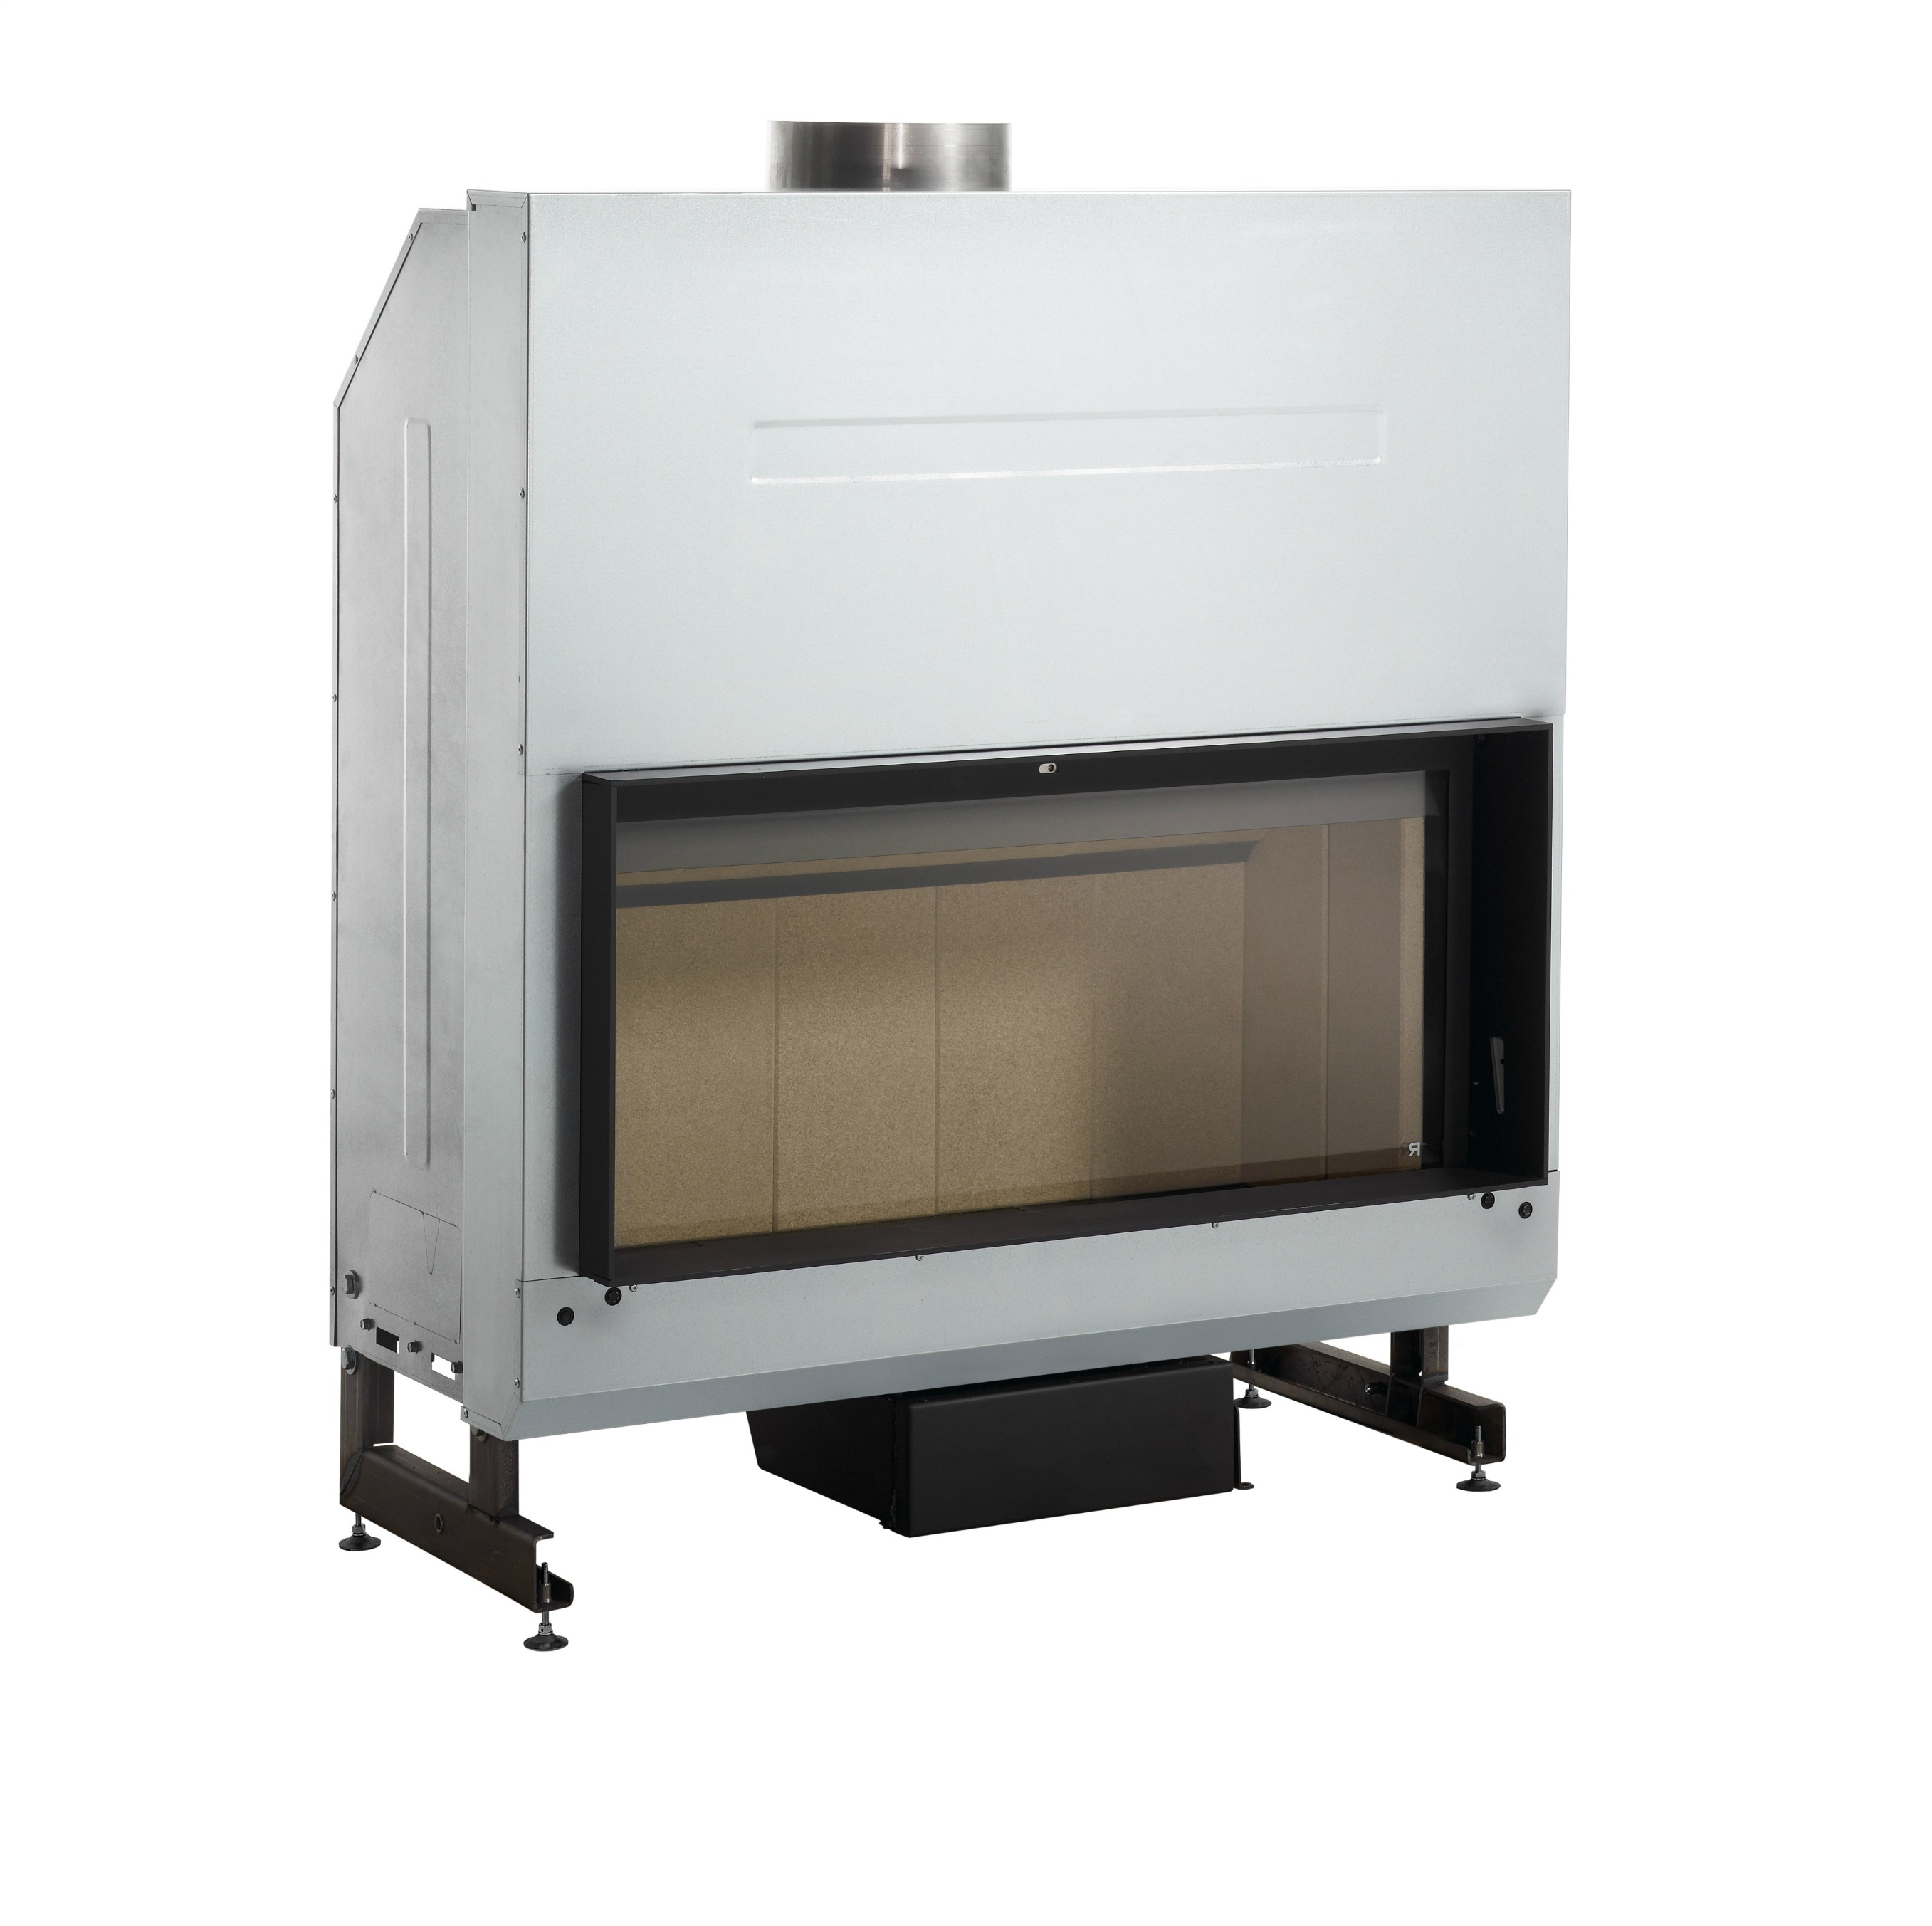 Rocal G500 Insert Stove